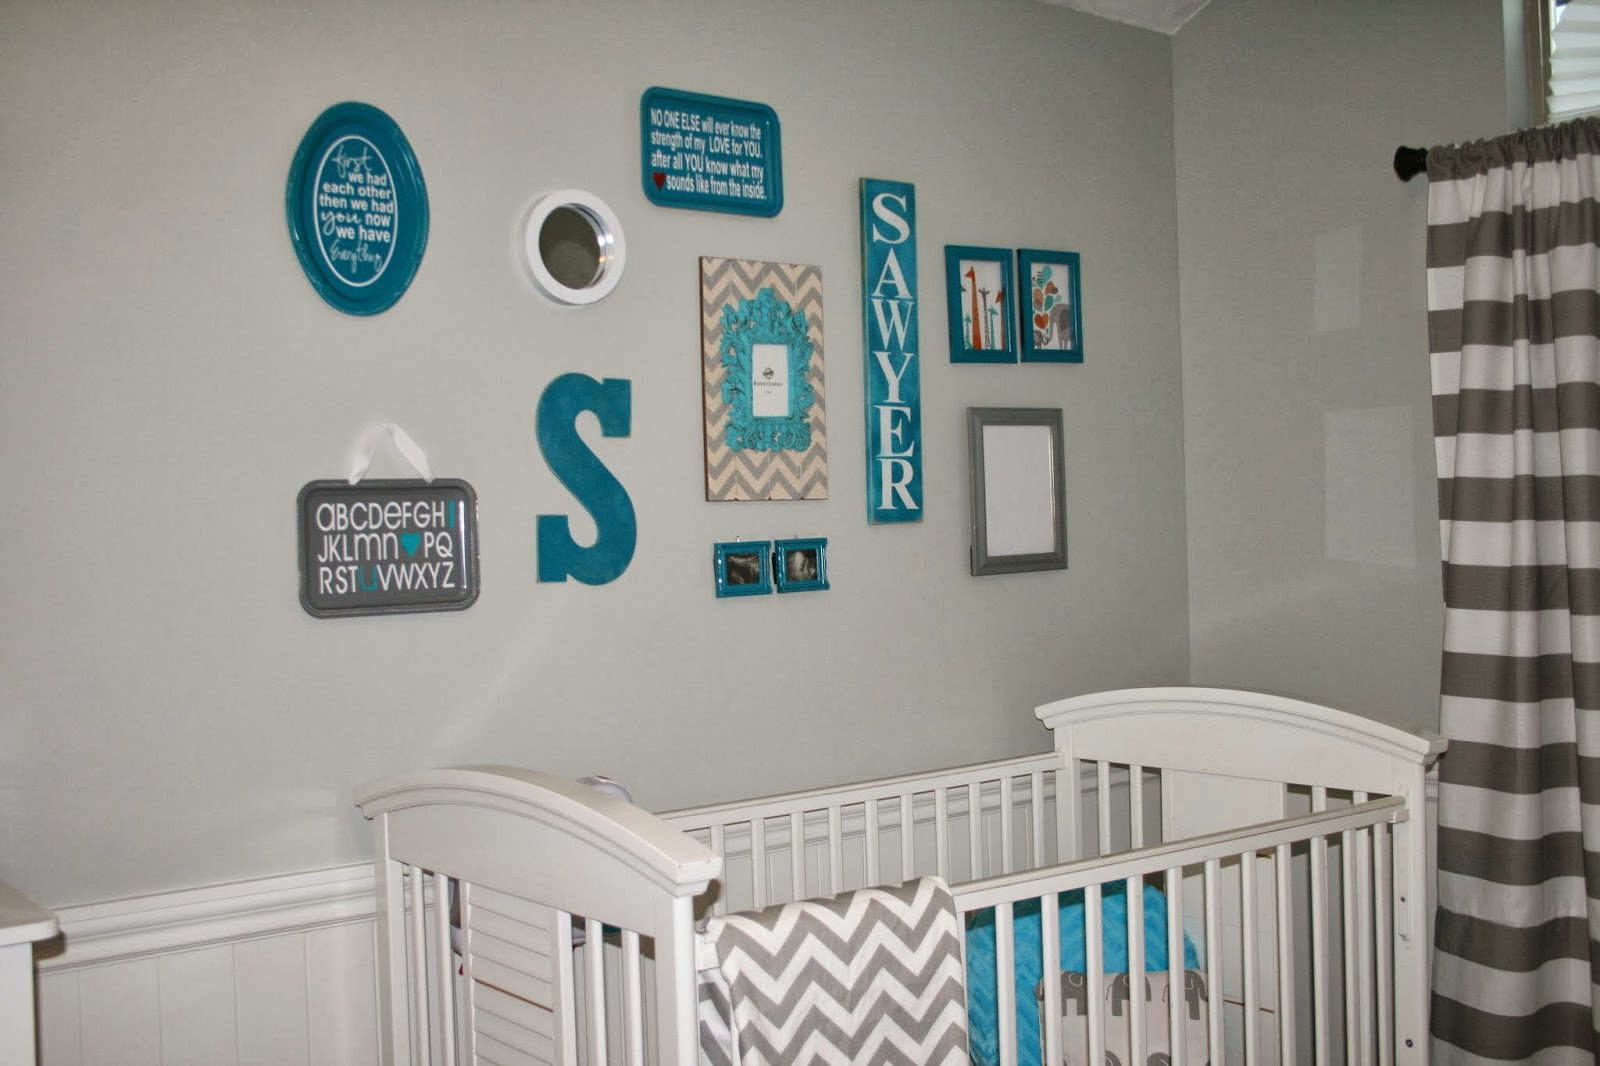 Creative juices baby room decor and collage wall for Baby room decoration